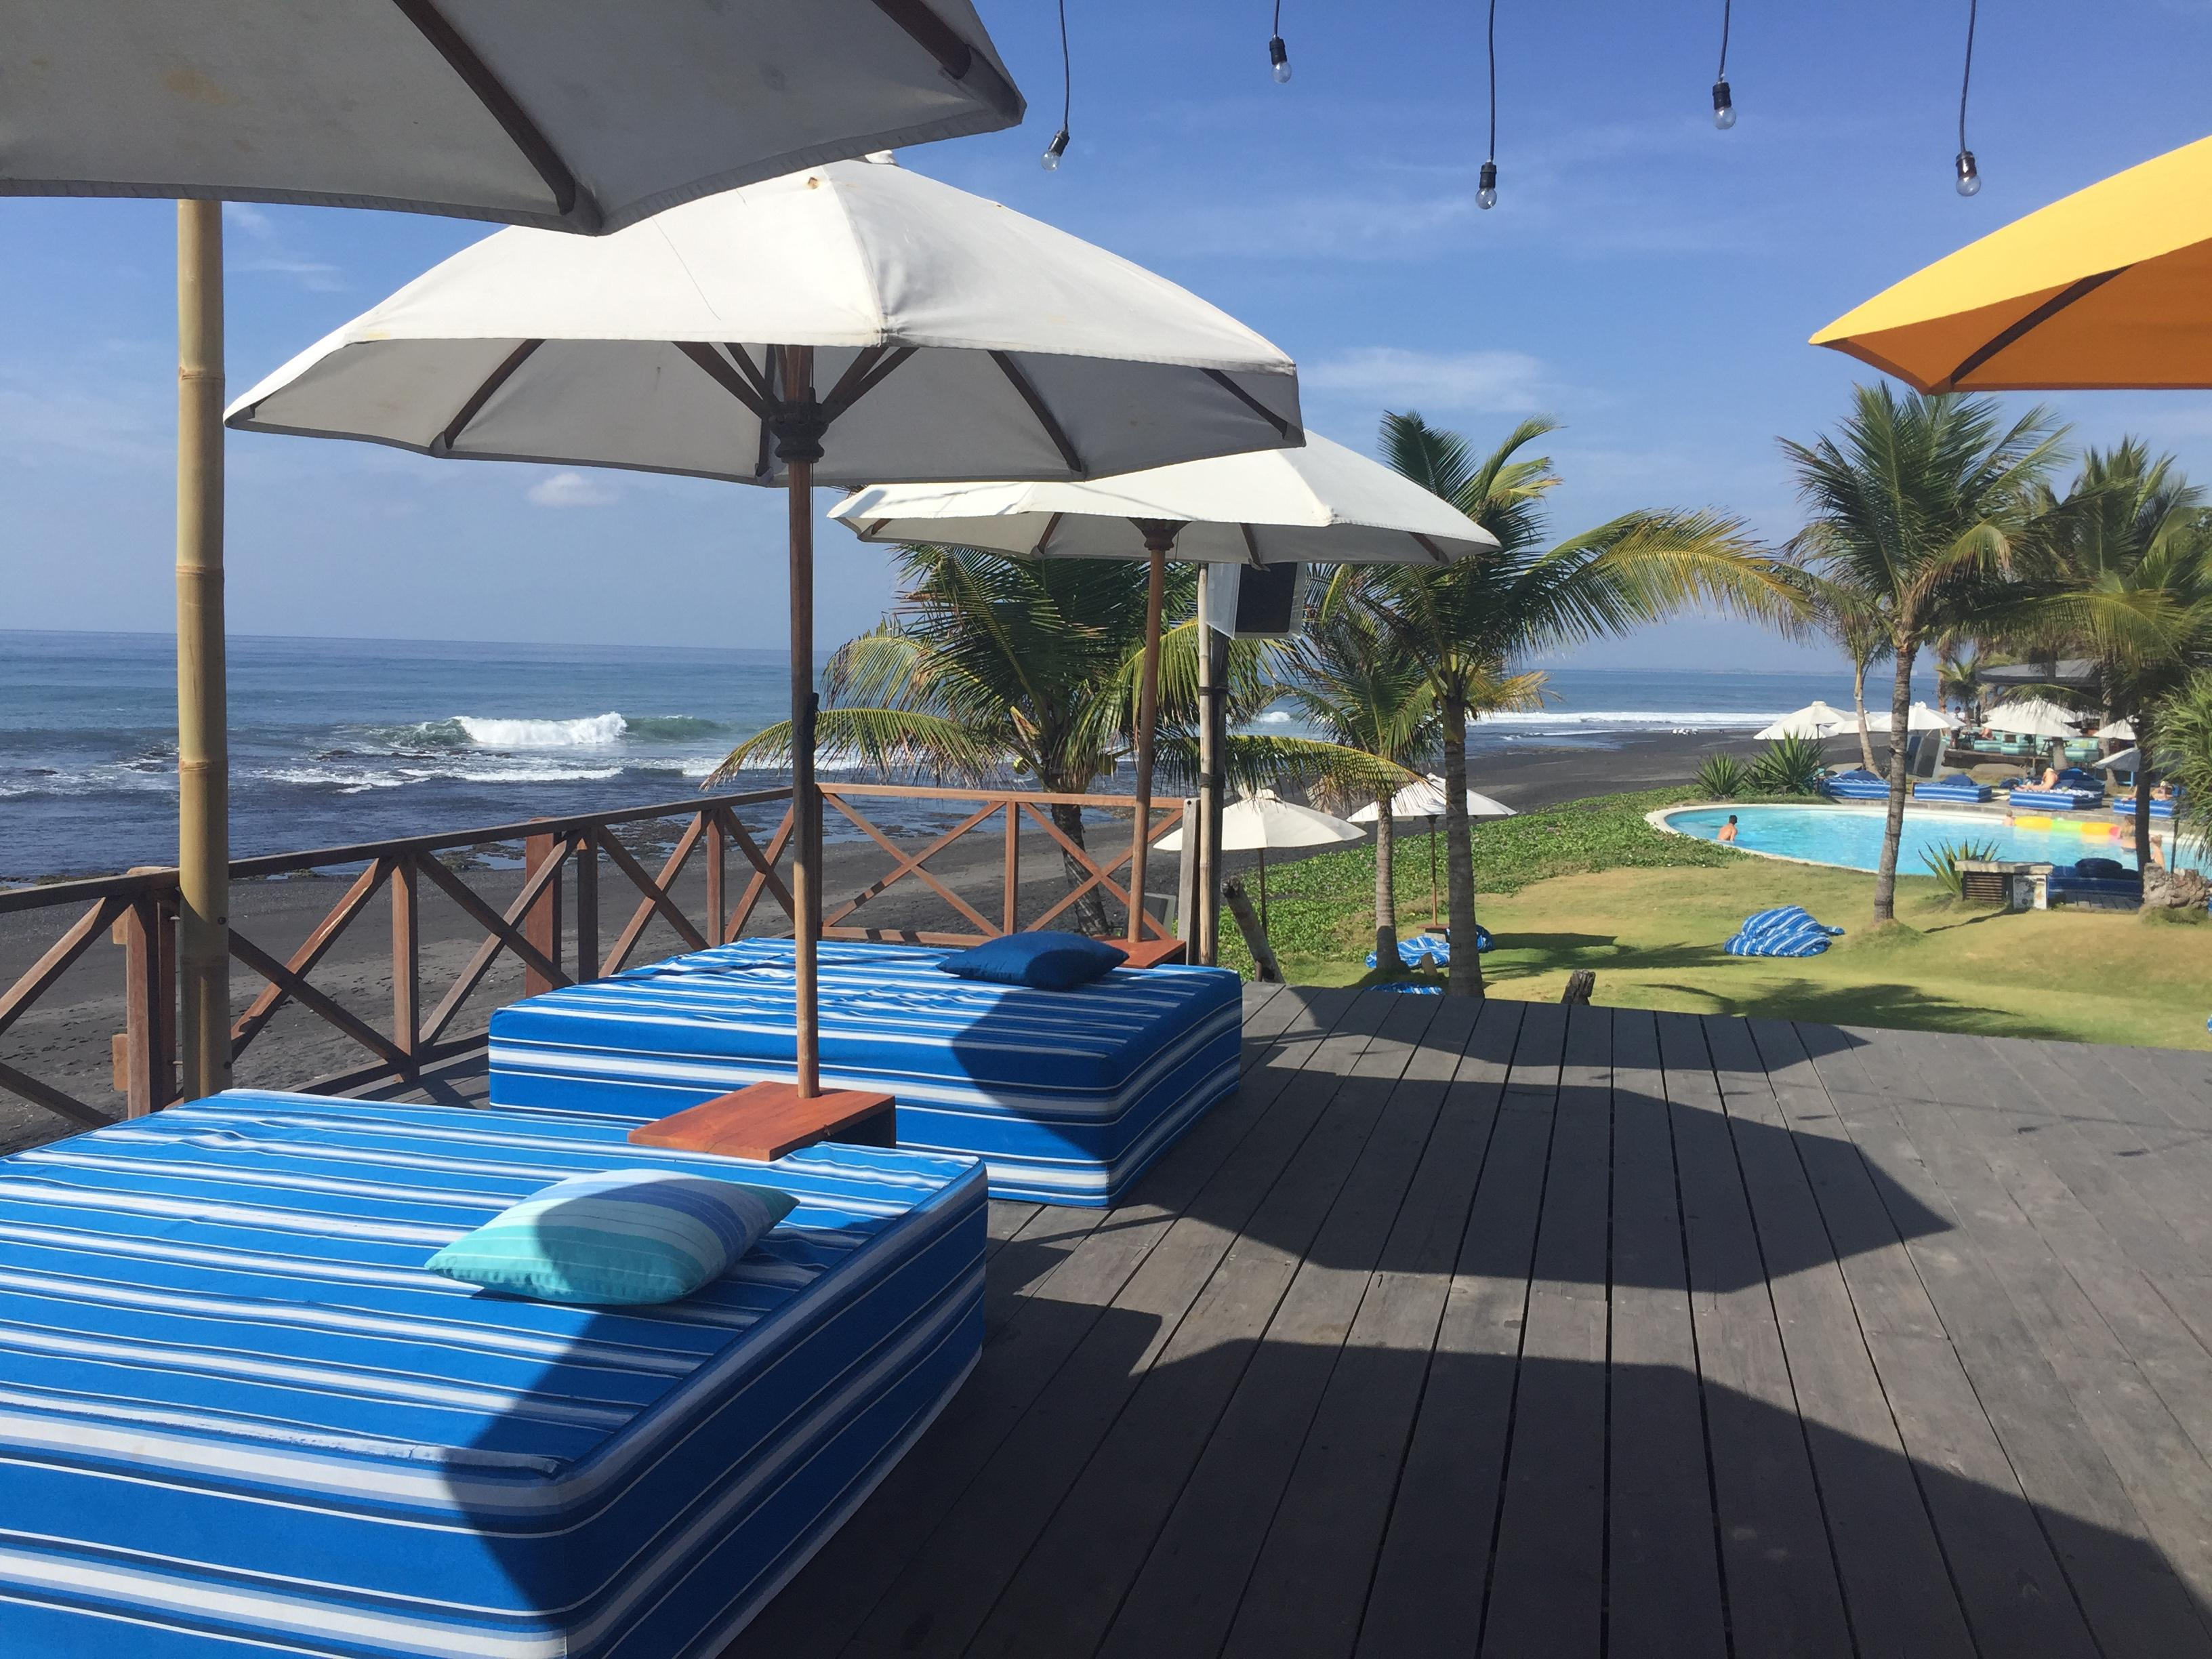 Komune Resort Beach Club Bali Pictures Reviews Prices - Norway komune map